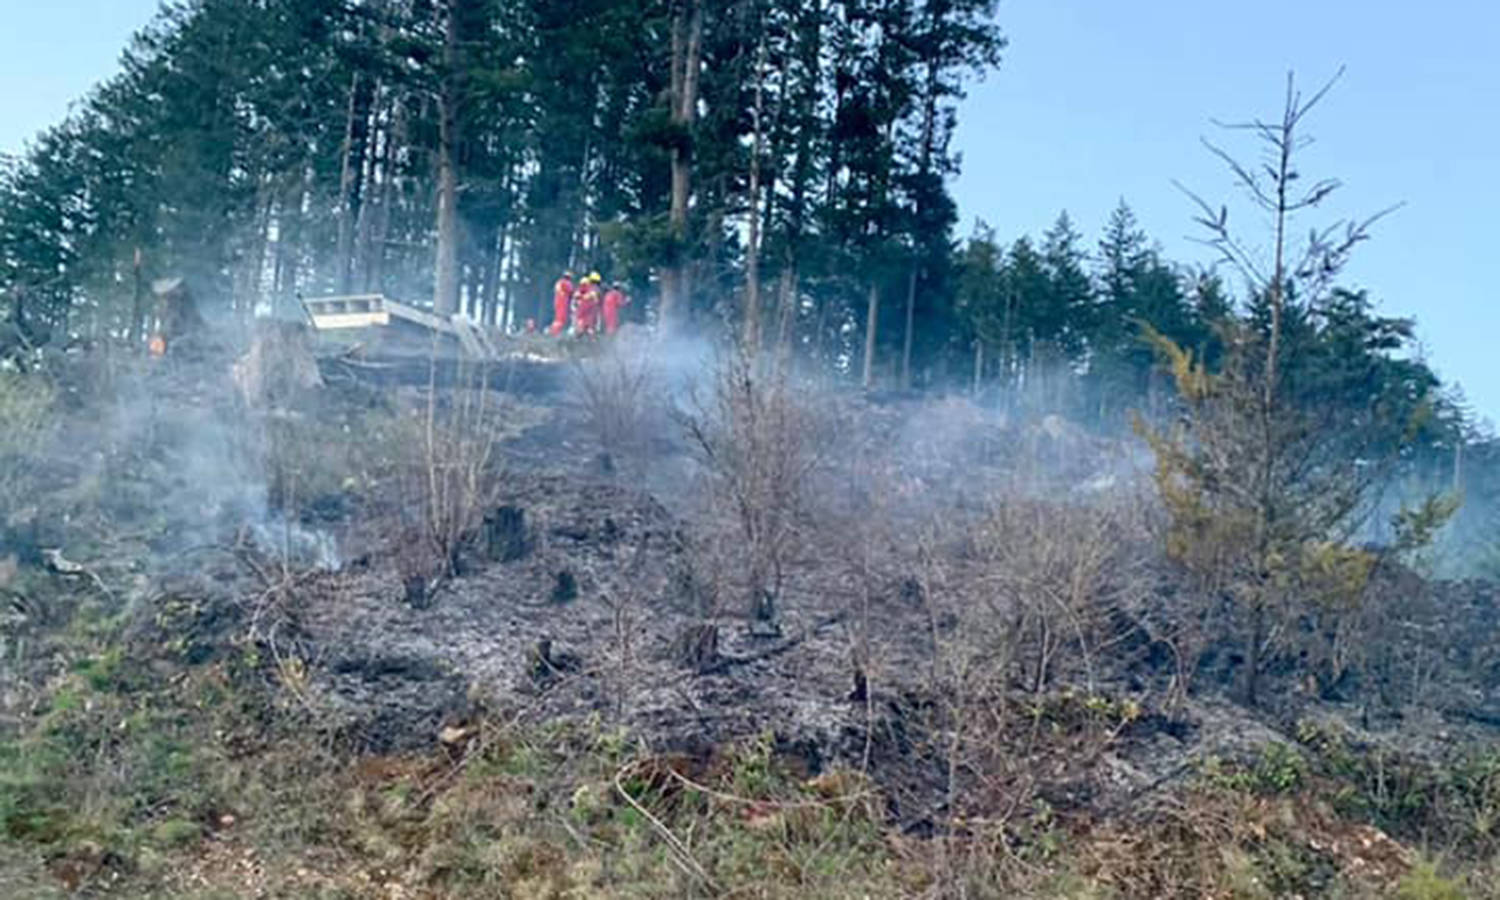 Agassiz, Seabird Island and B.C. Wildfire Service firefighters battled a blaze on Mount Woodside on Wednesday (April 14). The cause of the wildfire remains under investigation as of publication. (Photo/Agassiz Fire Department)